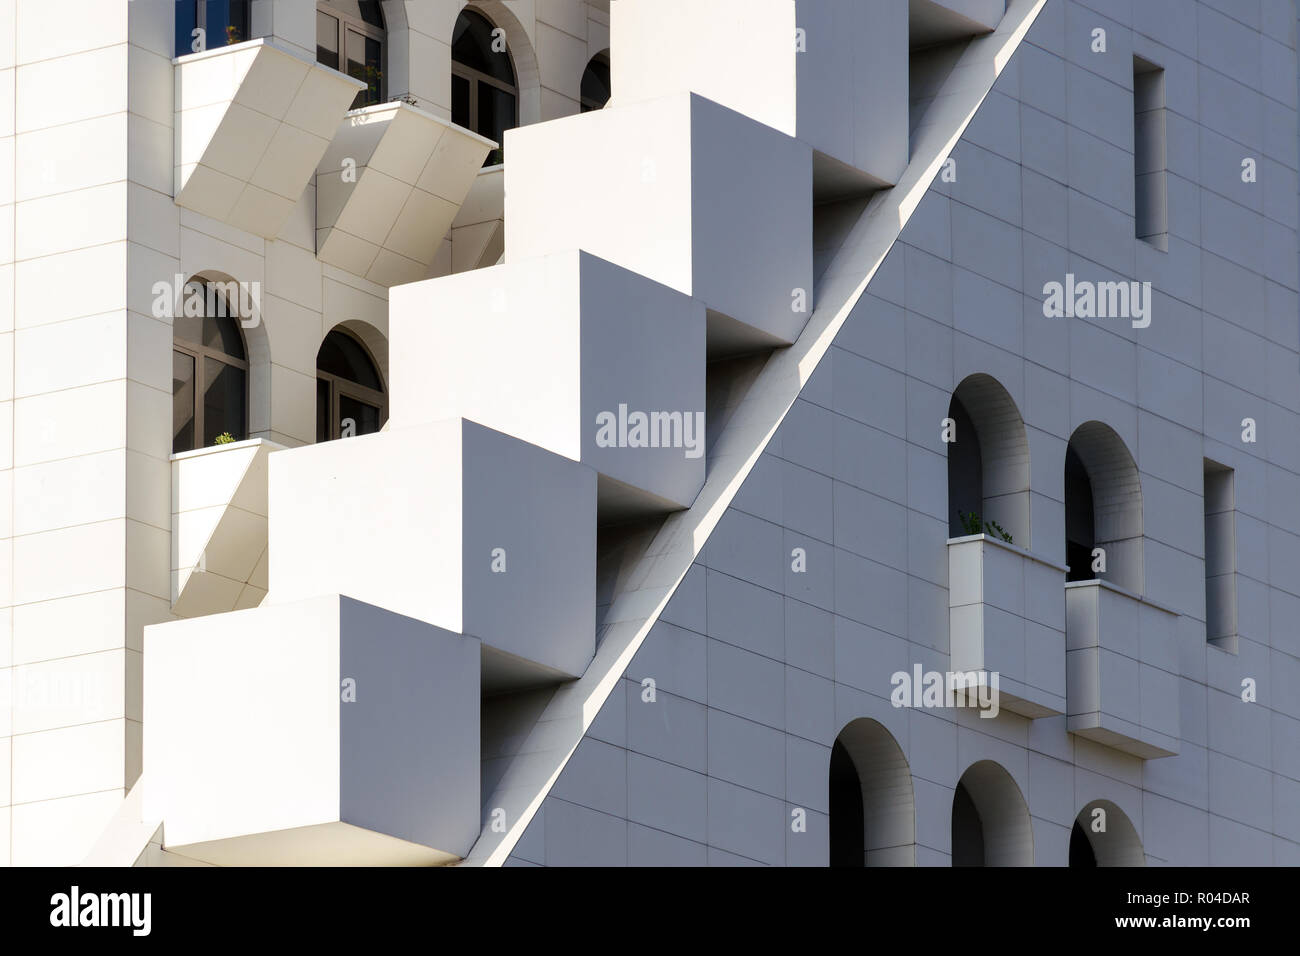 Mixing of forms and shapes, layering in modern architecture - part of facade building, unusual geometrical exterior, complex structure. Stock Photo